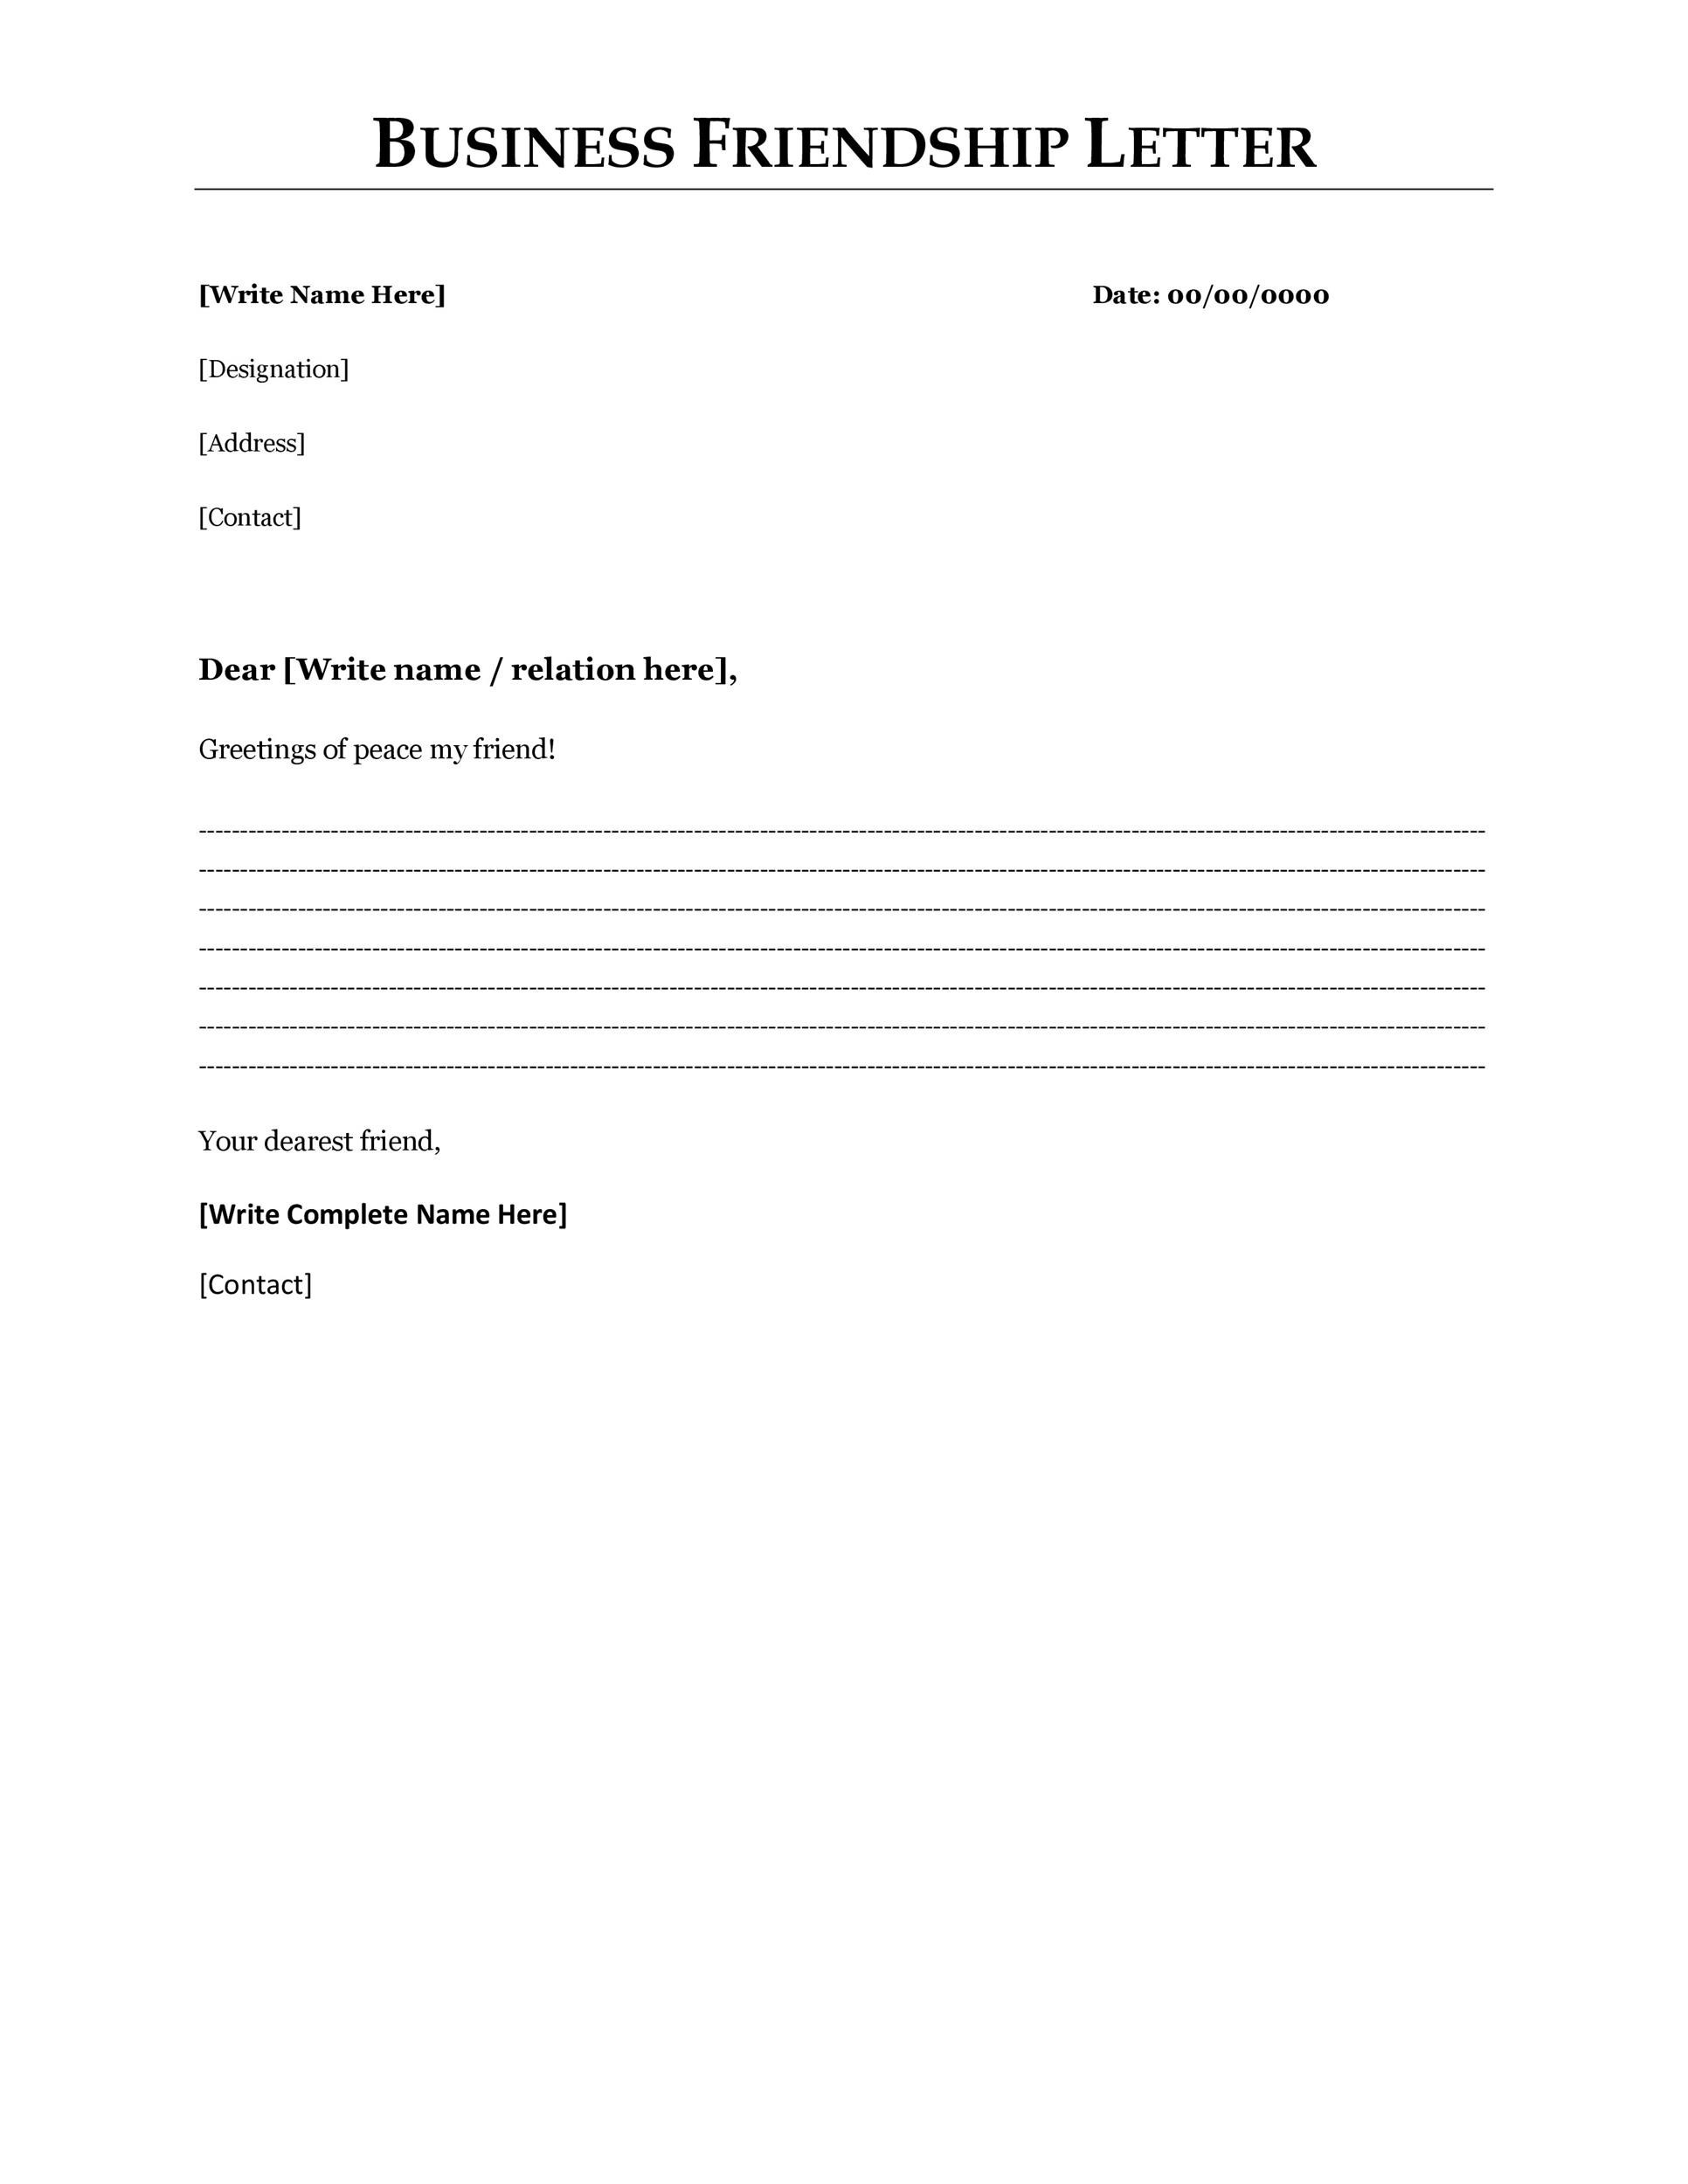 template for business letter 35 formal business letter format templates amp examples 25055 | formal business letter 14